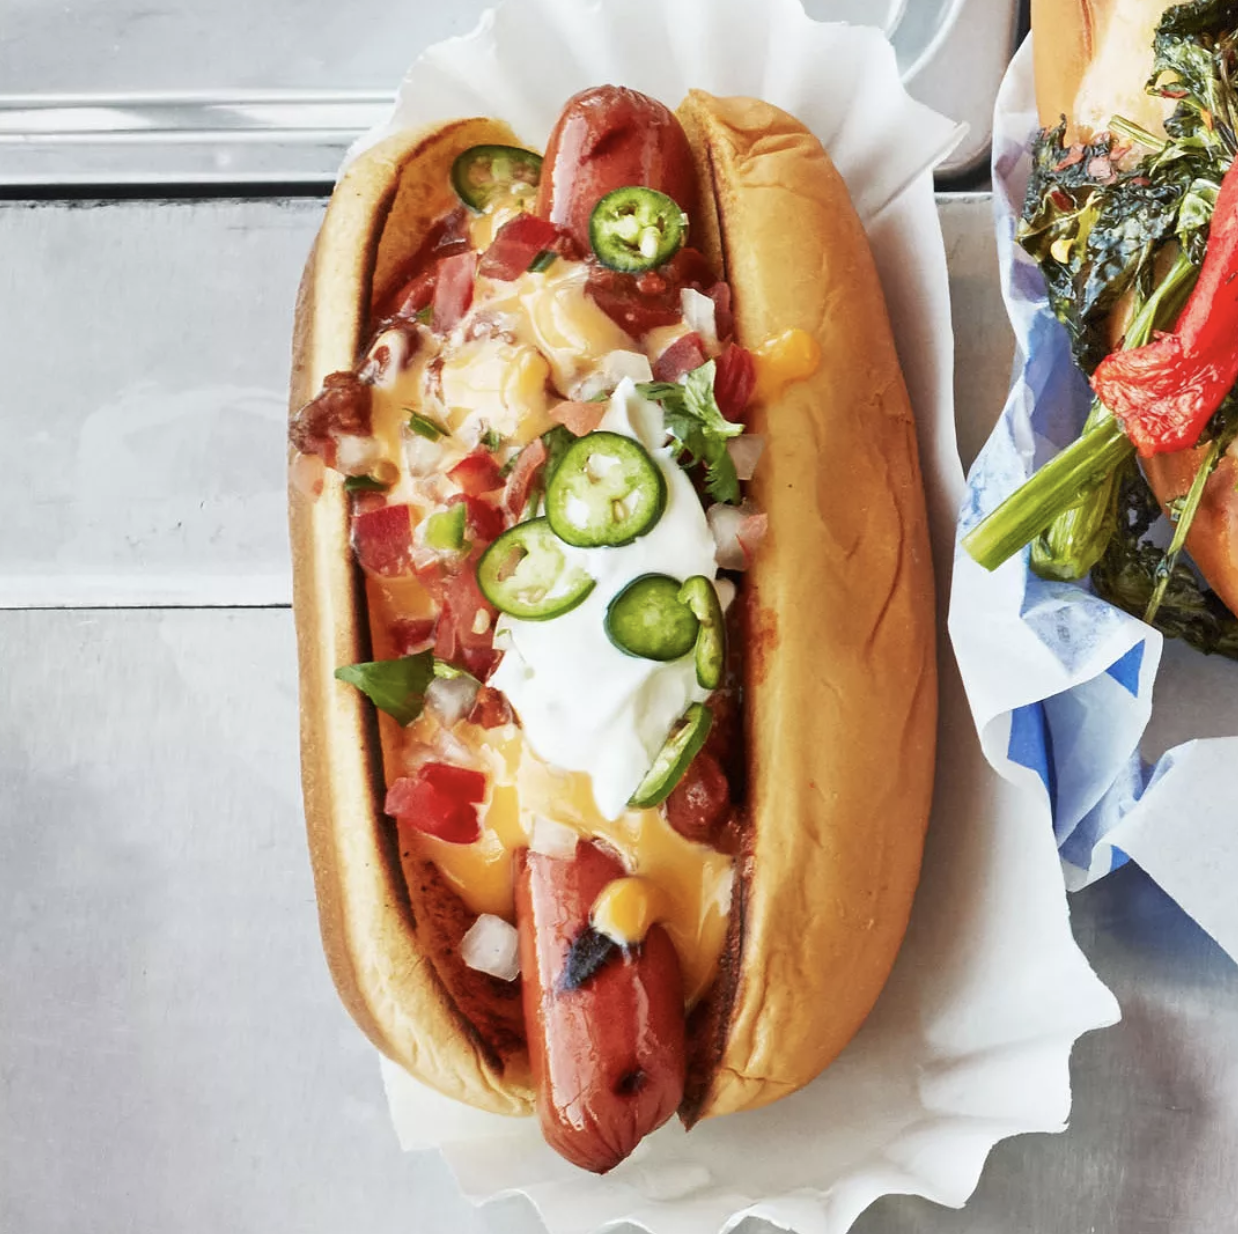 Photography by Marcus Nilsson